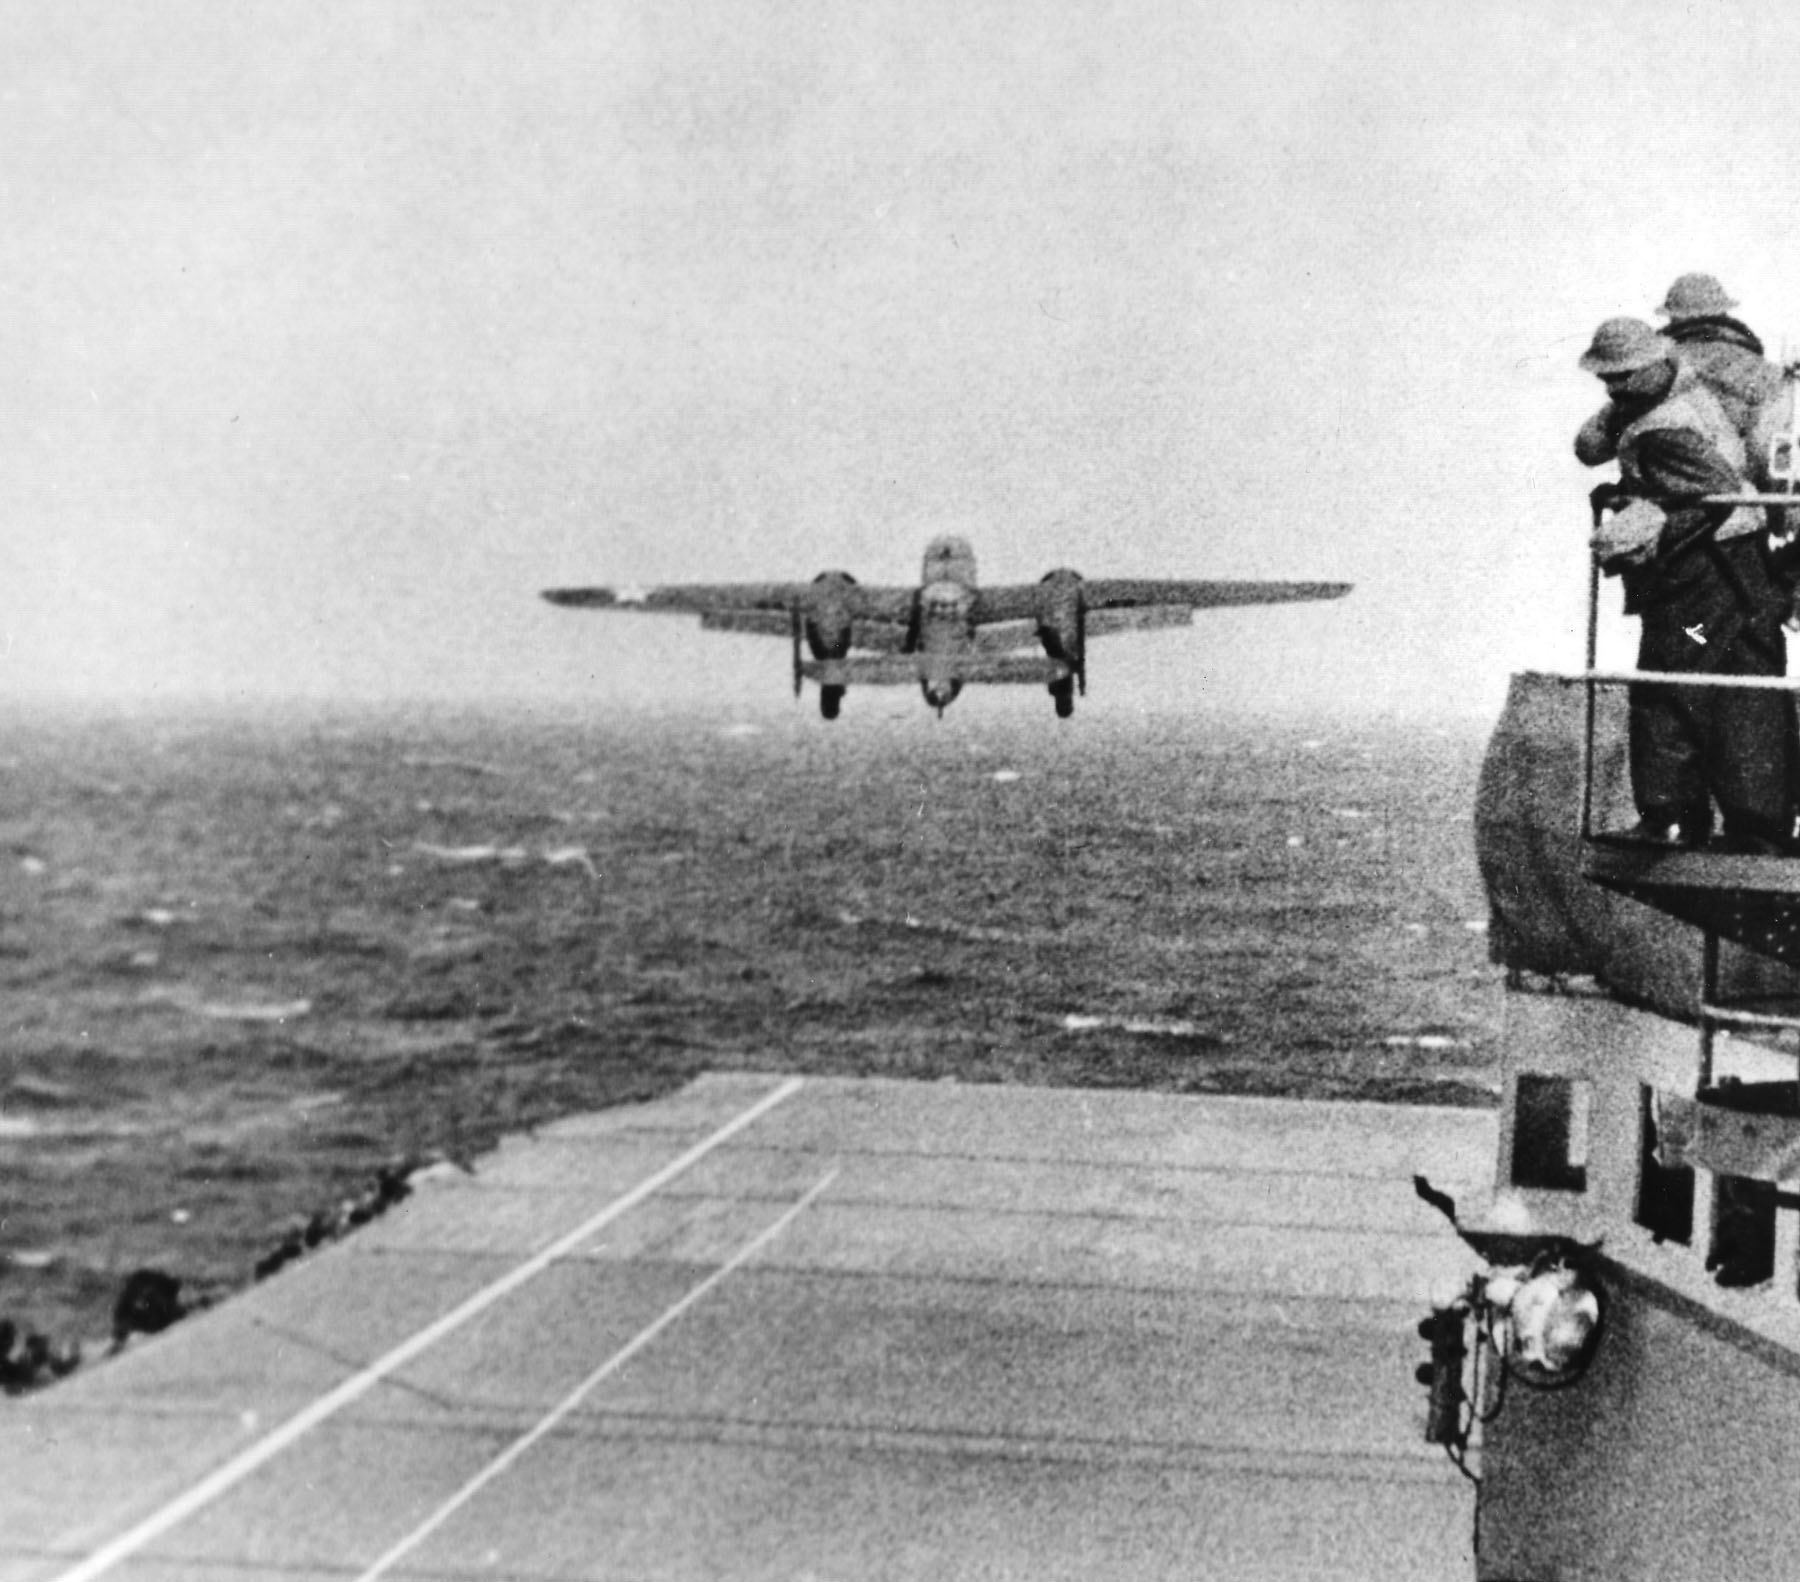 US B-25 taking off from USS Hornet for the Doolittle Raid, 18 Apr 1942 (US National Archives)